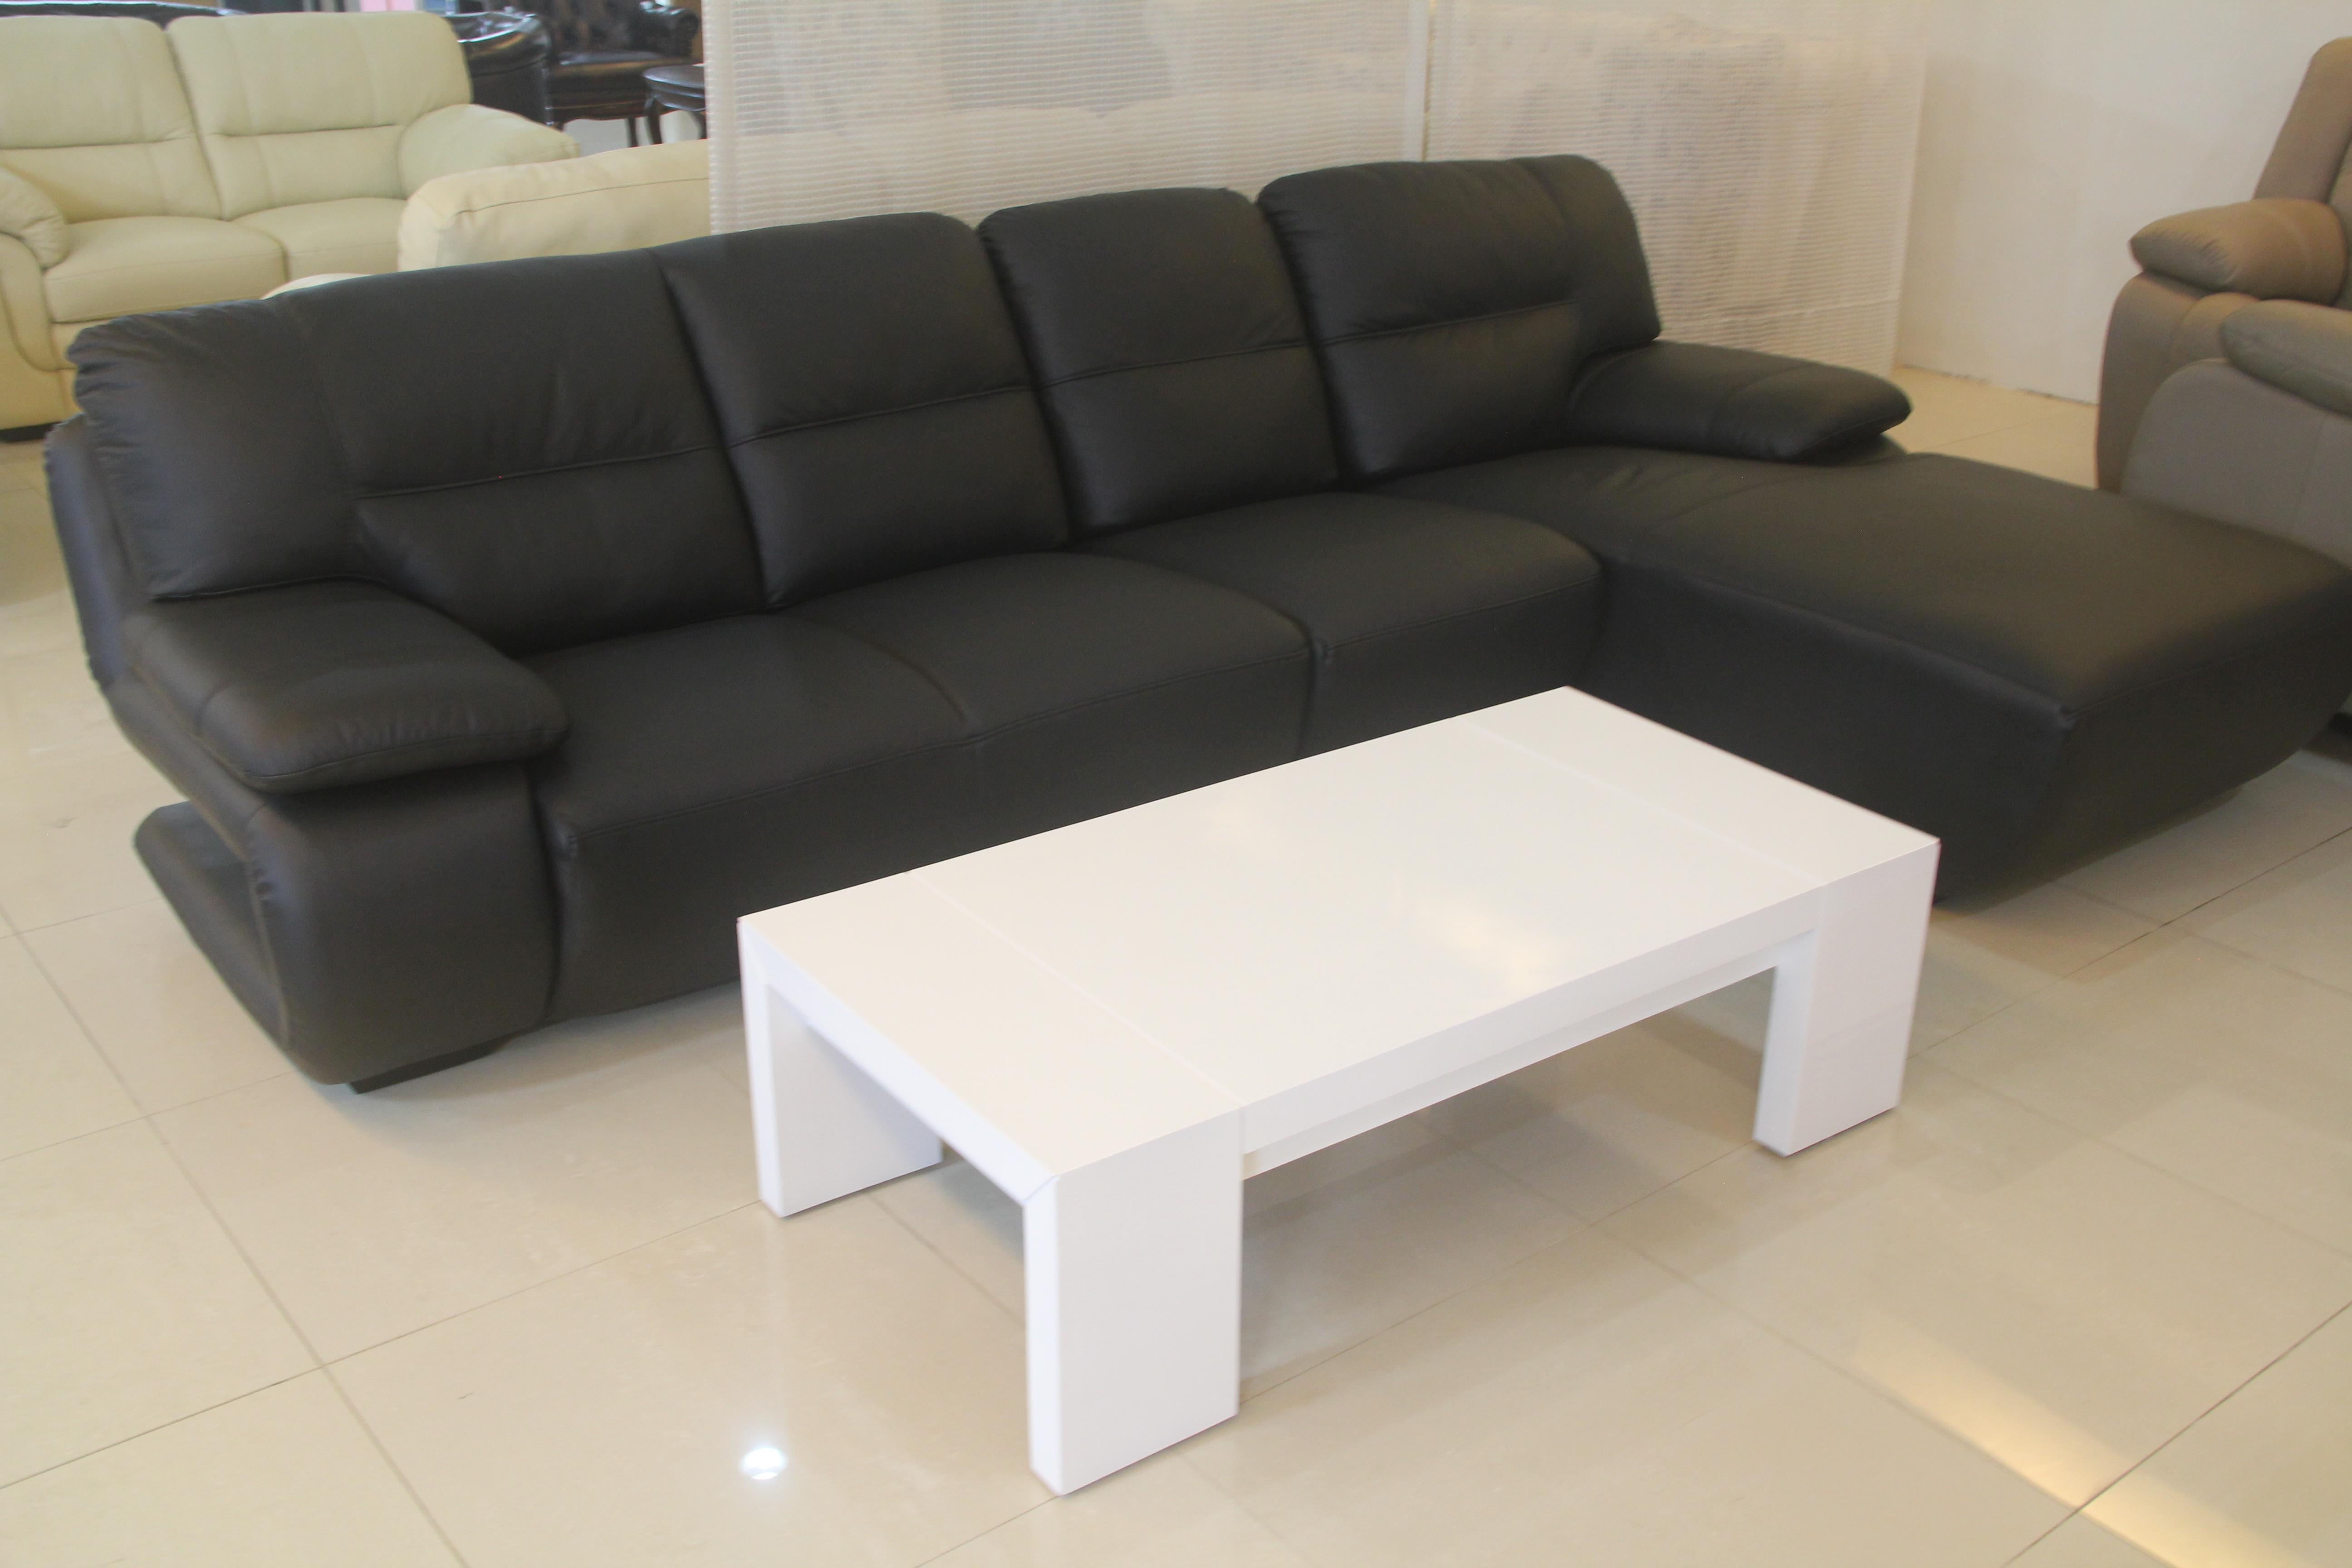 Jual Sofa Online Jakarta Sell Leather Sofa L Ciere From Indonesia By Fo Premium Furniture